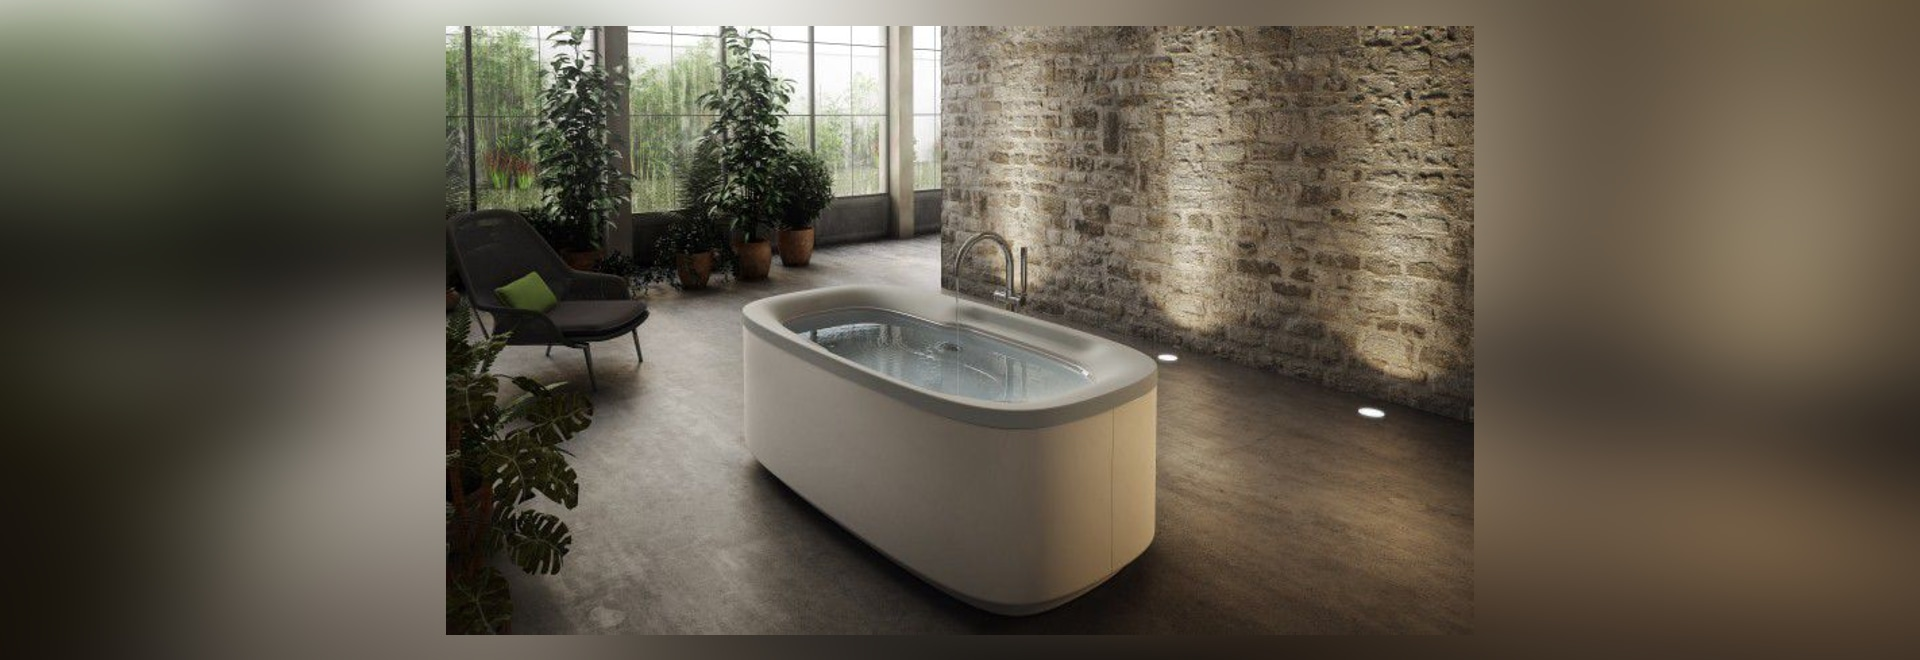 NEW: oval bathtub by Jacuzzi Europe S.p.A.